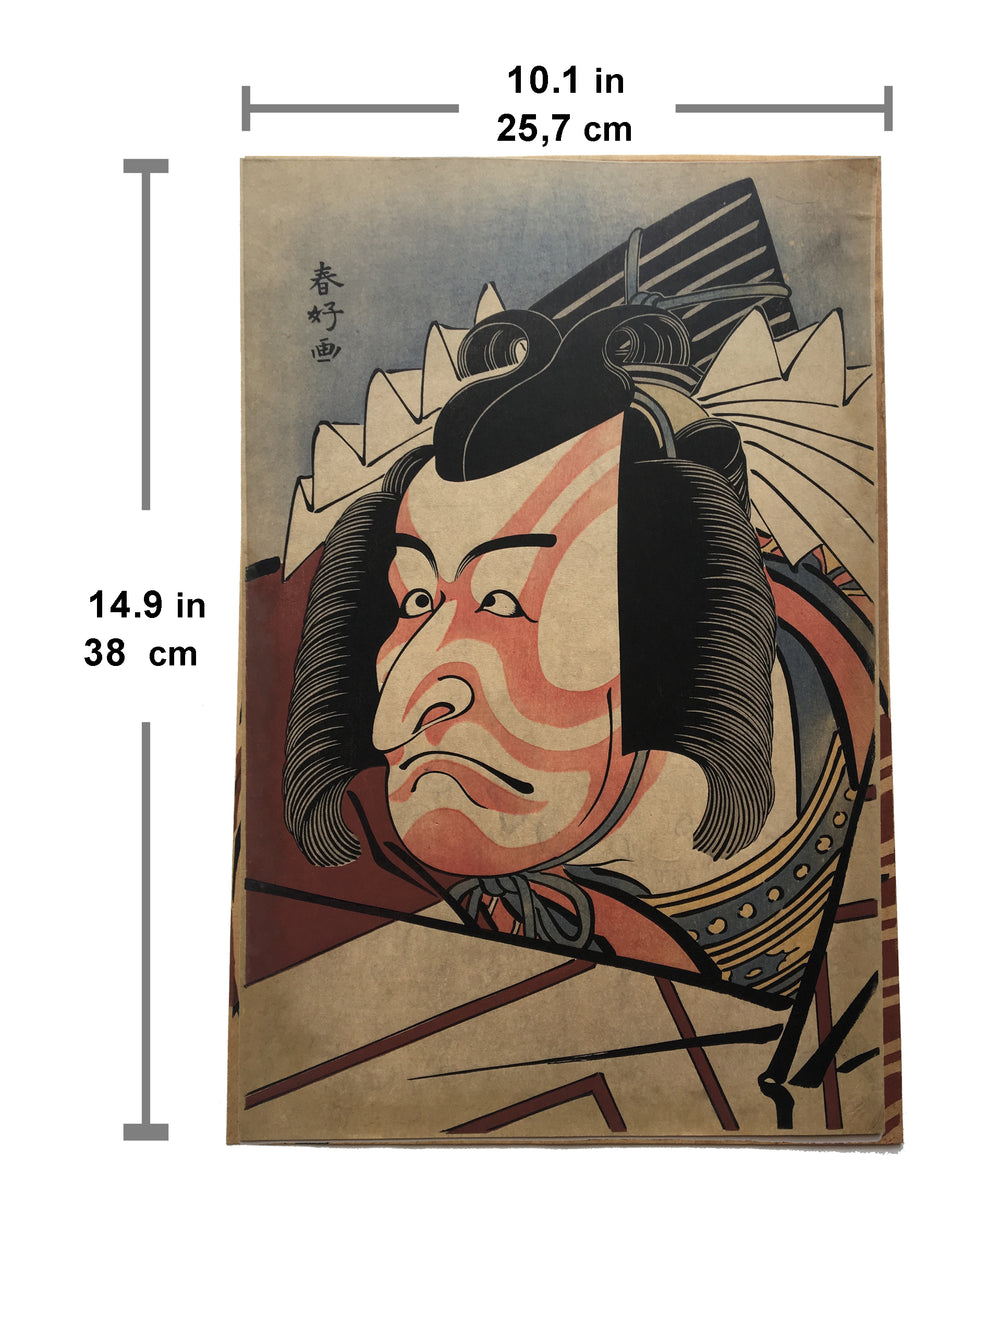 A while after Ichikawa Ebizō  by Katsukawa Shunshō (late 18th century)